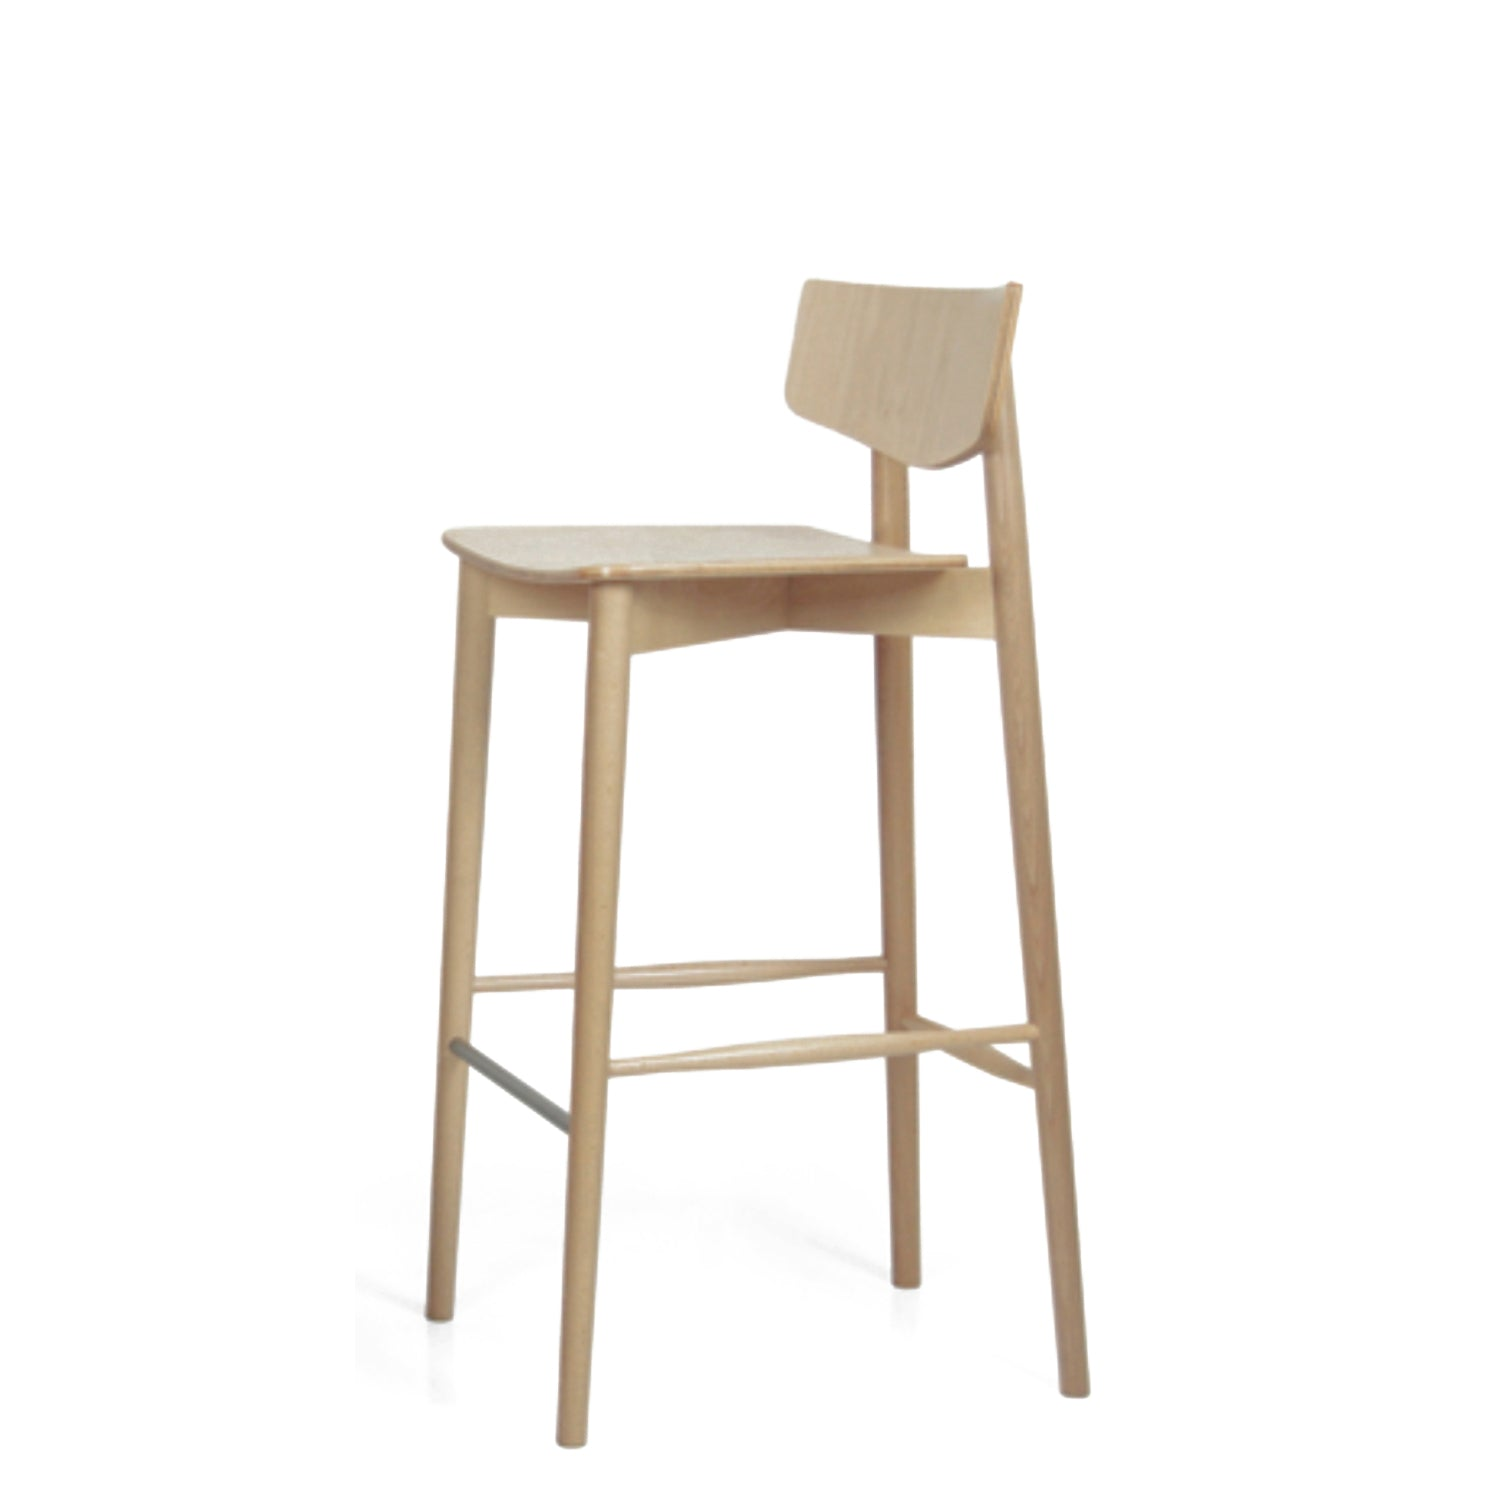 sixteen3 Natural Aaron High Stool